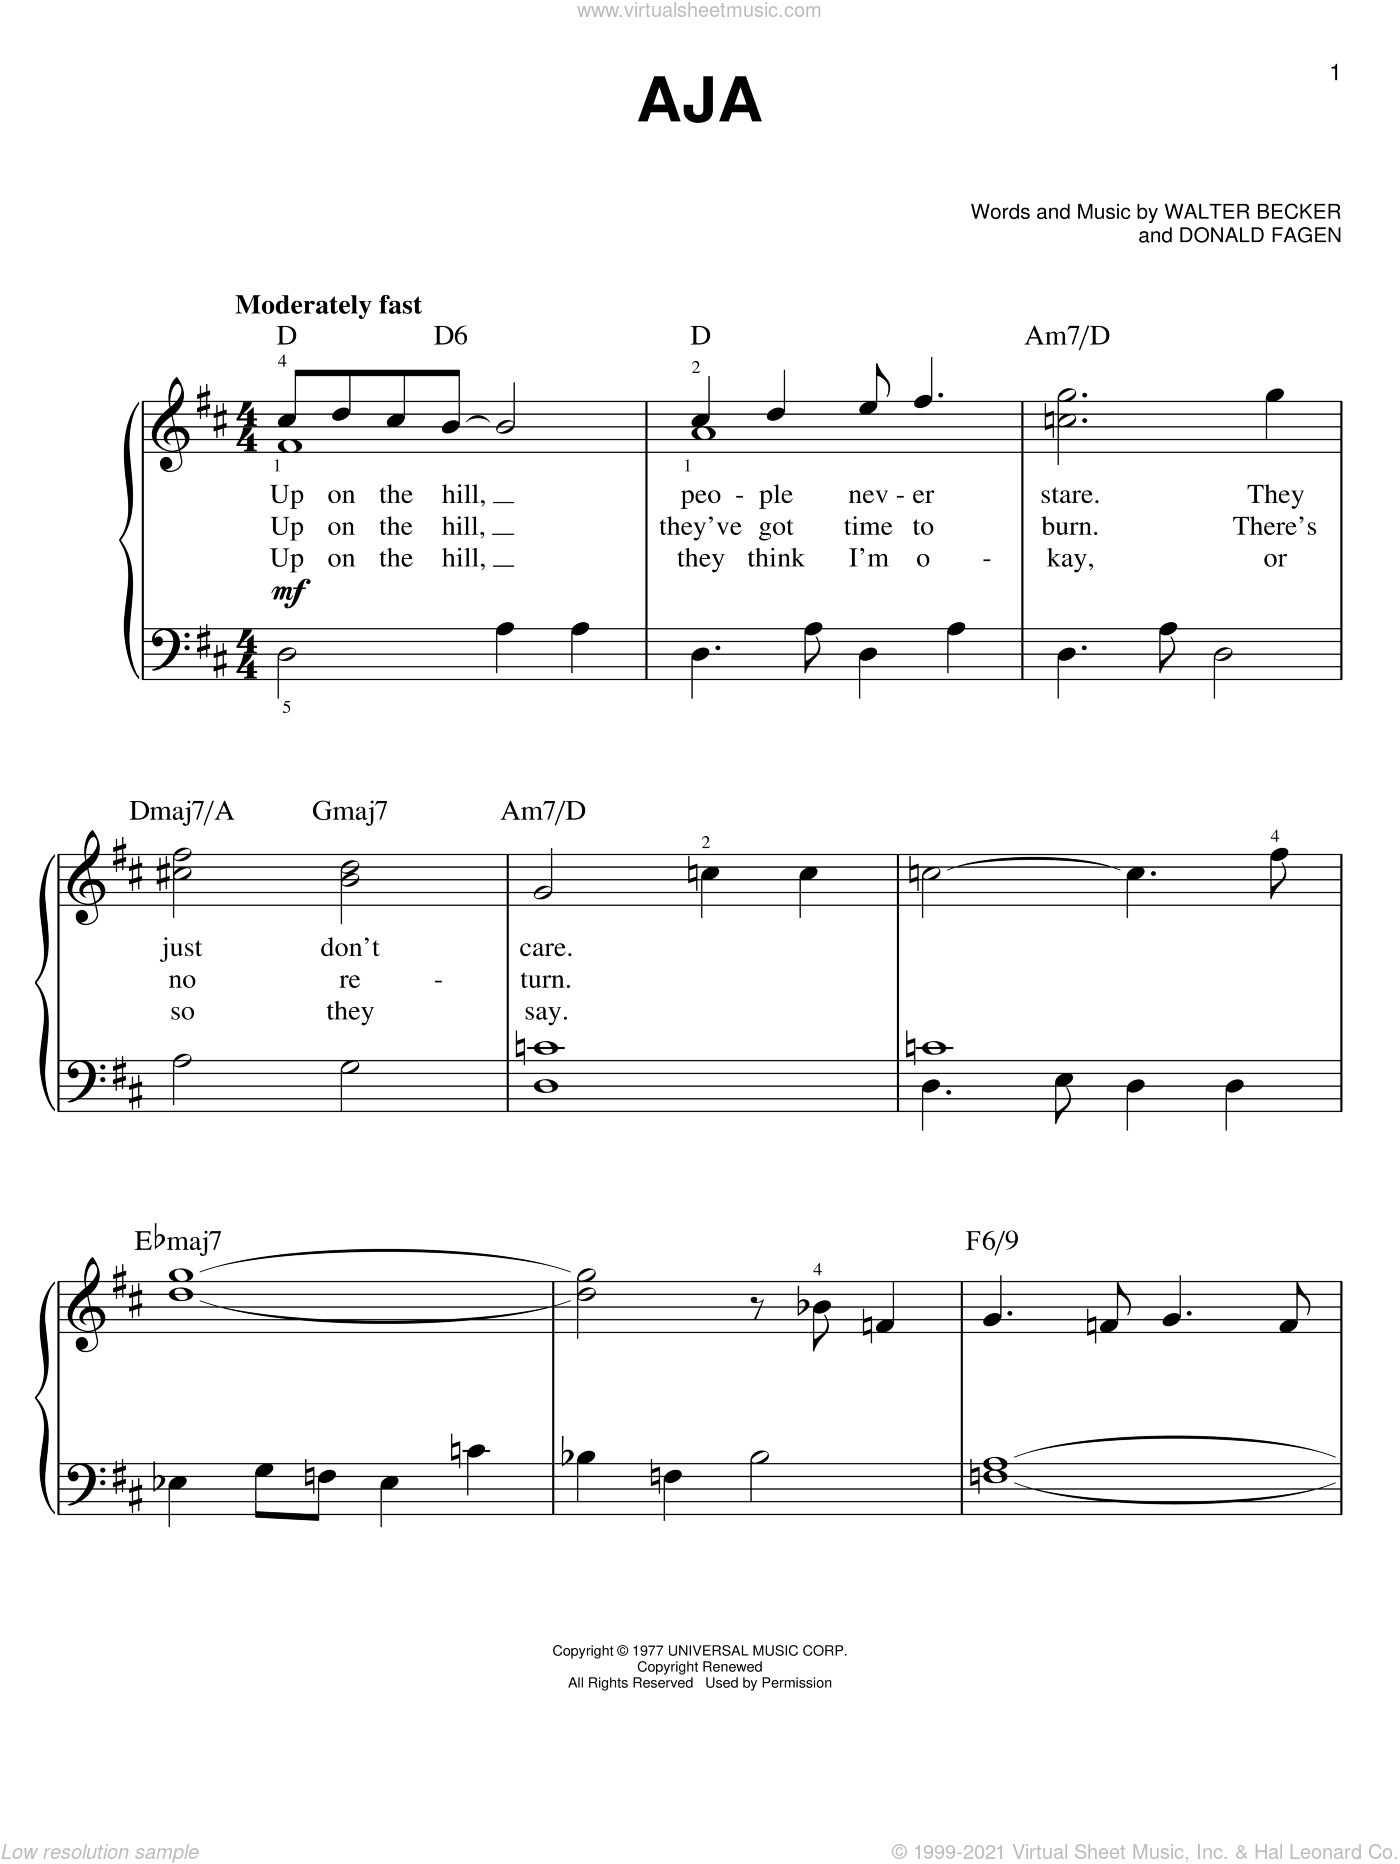 Aja sheet music for piano solo (chords) by Walter Becker